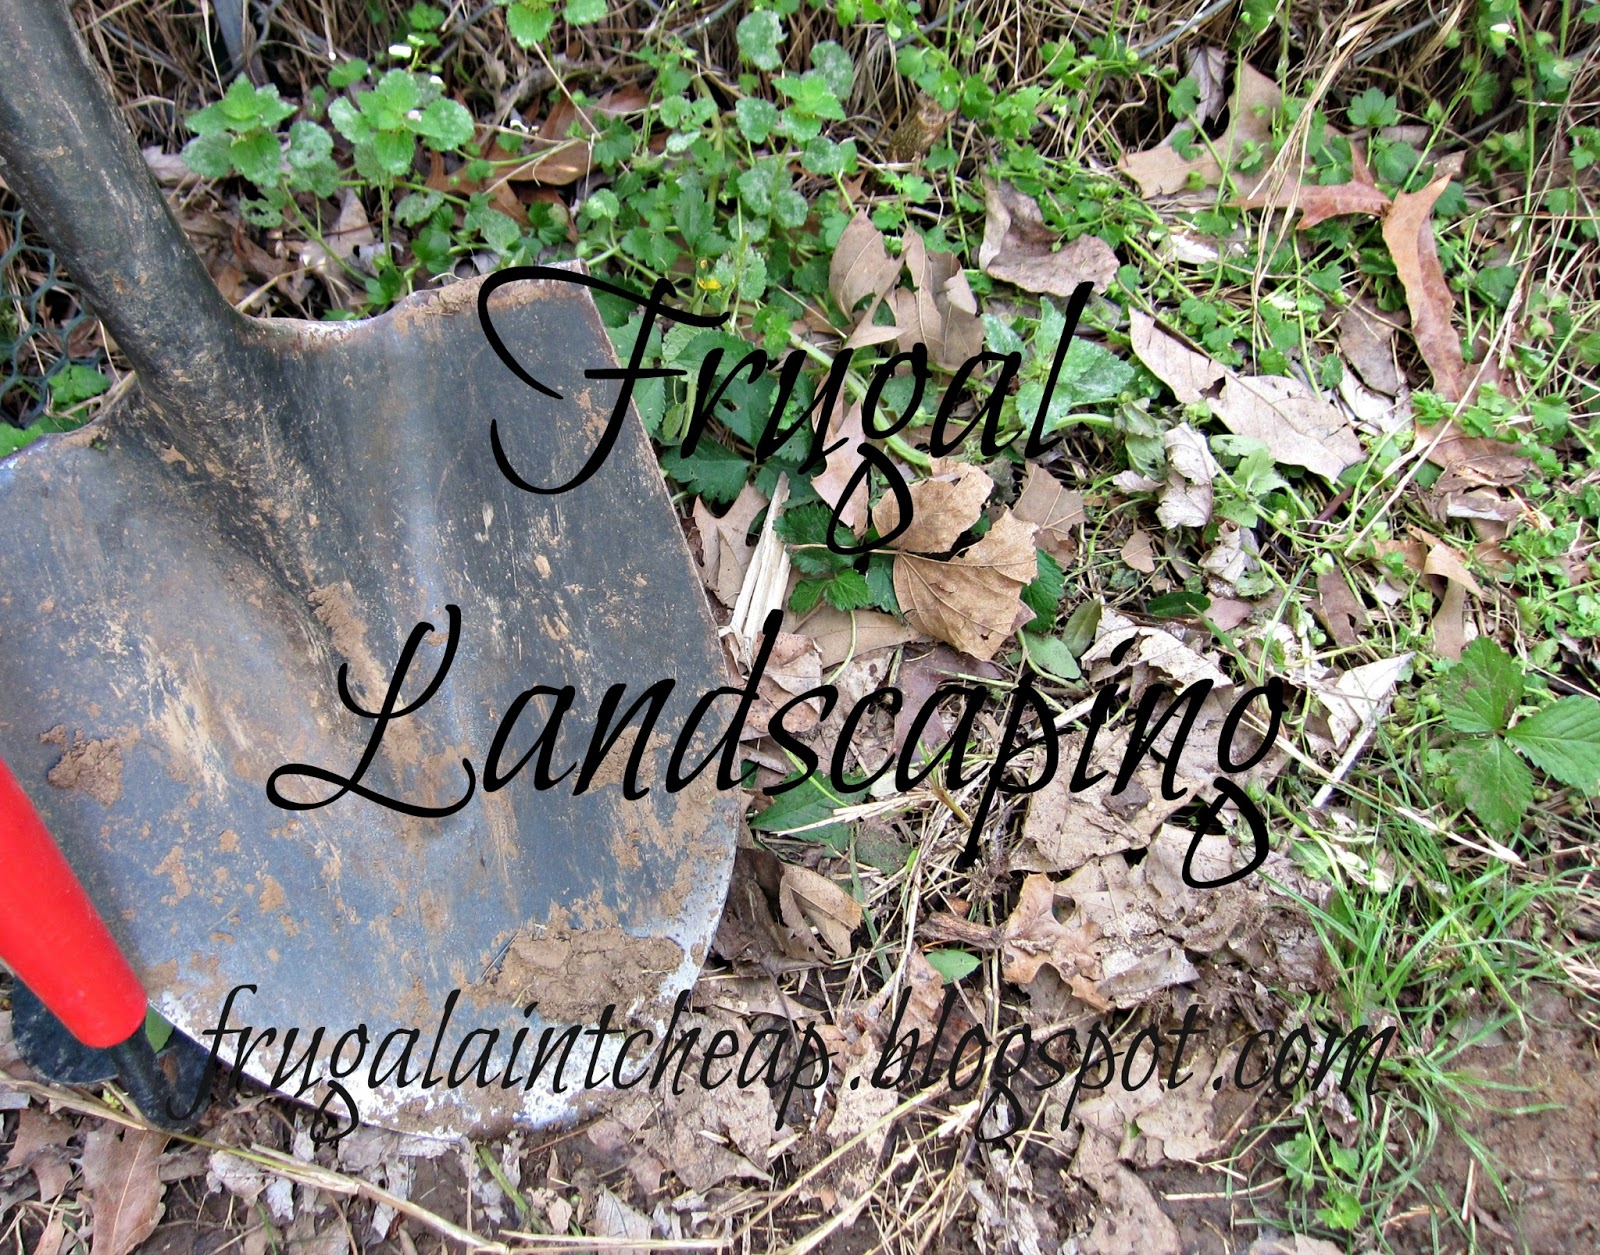 Cheap Landscaping Materials frugal ain't cheap: landscaping the frugal way